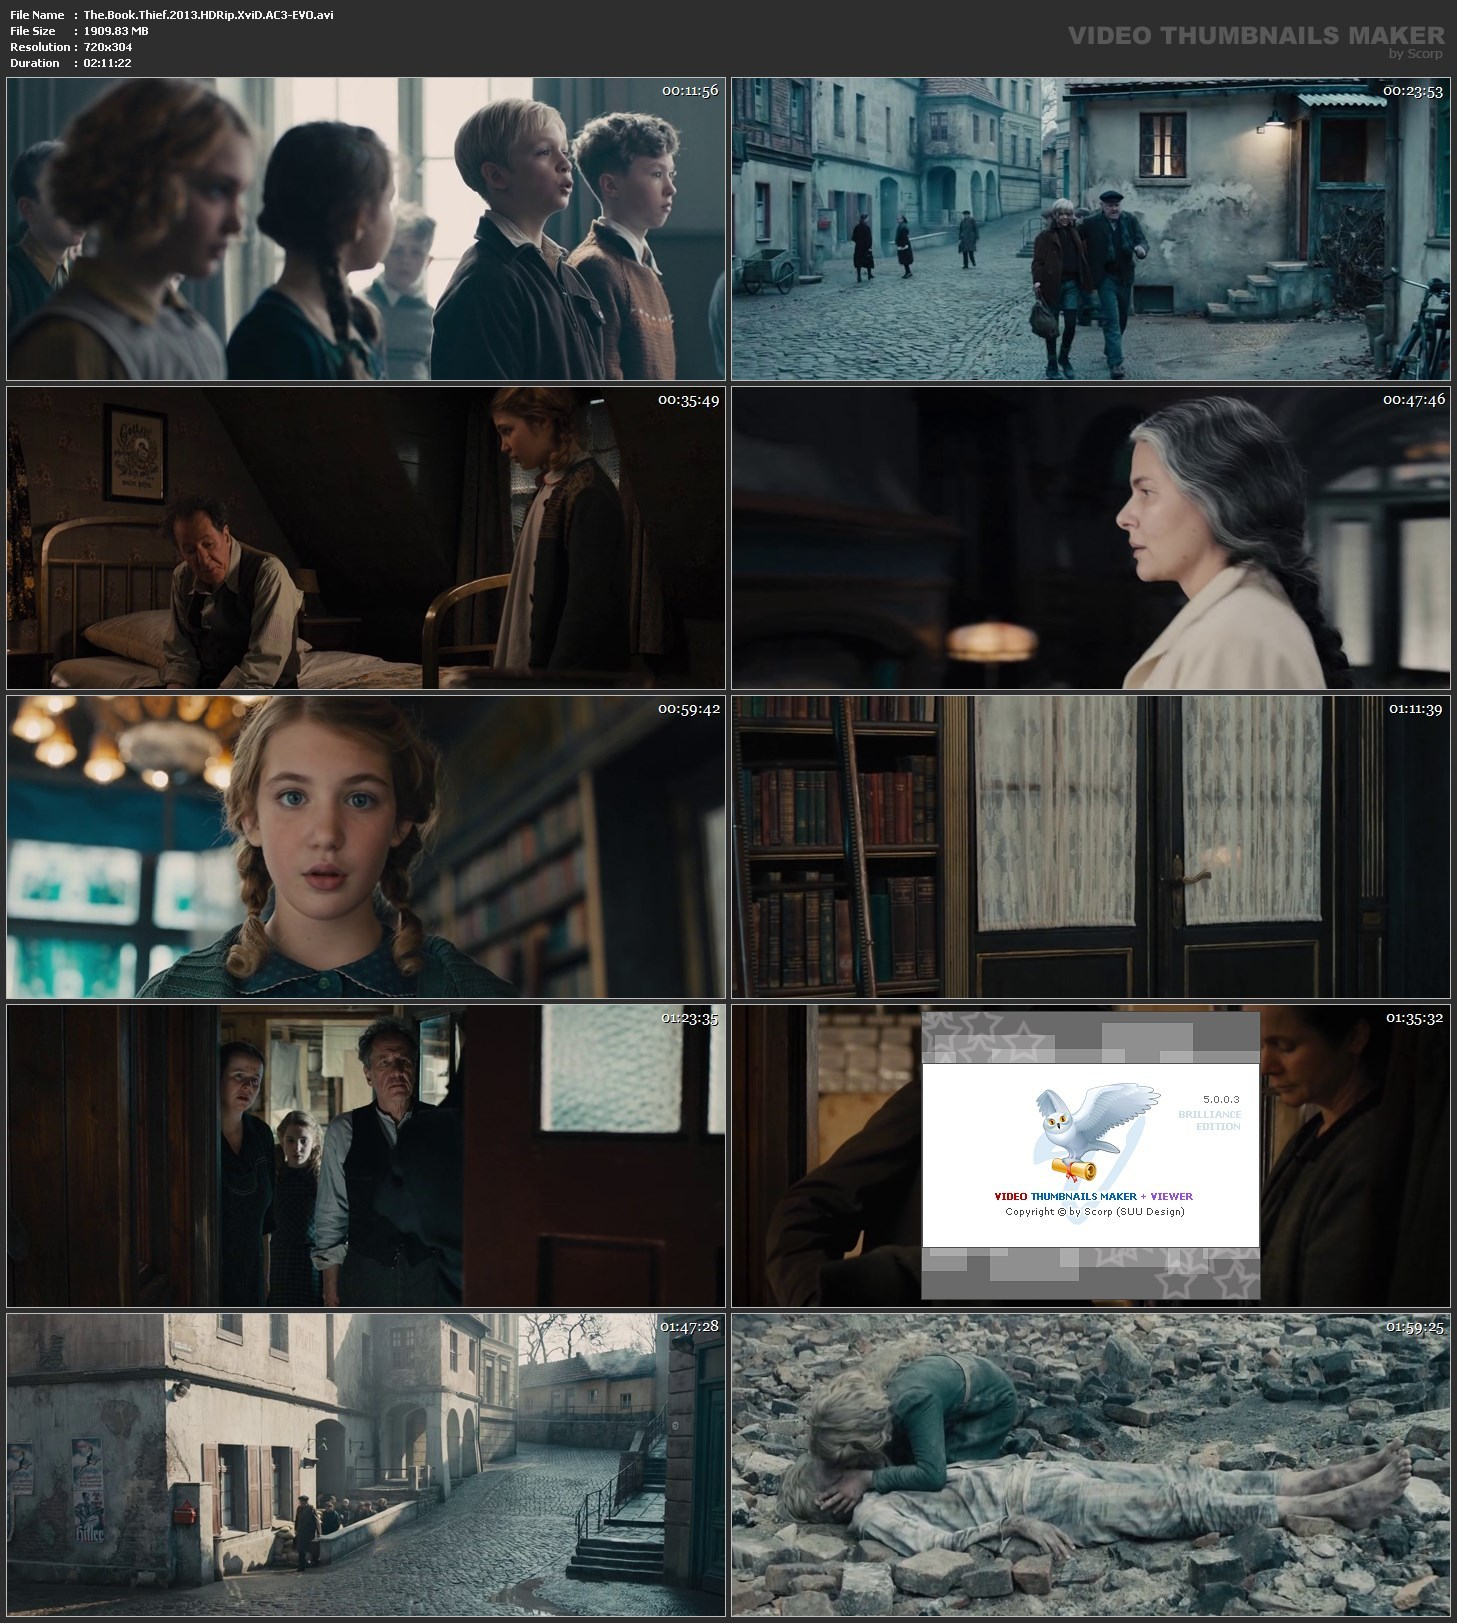 2gb the book thief 2013 hdrip ac3 eng click here to view the original image of 1457x1623px